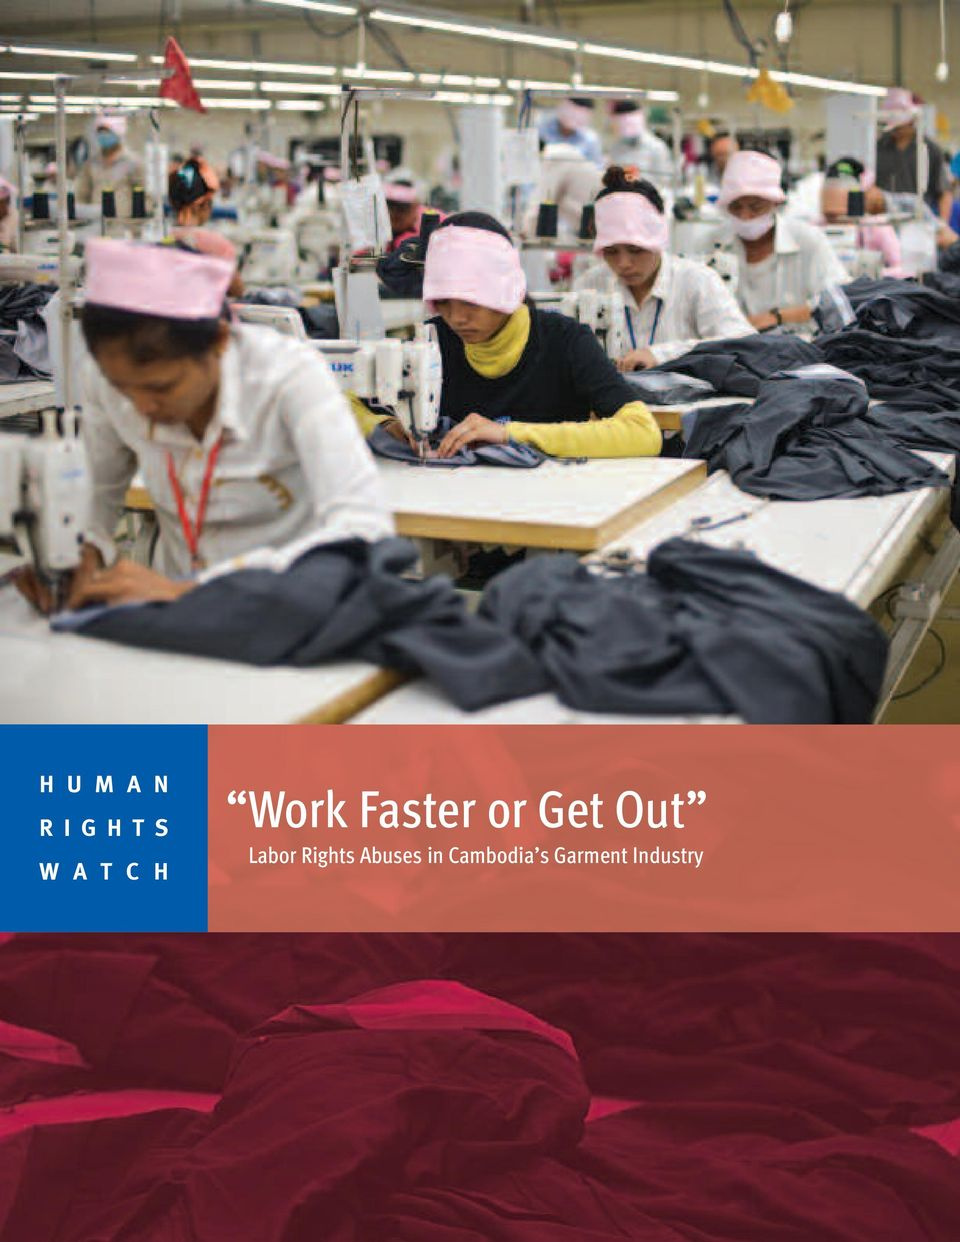 Out Labor Rights Abuses in